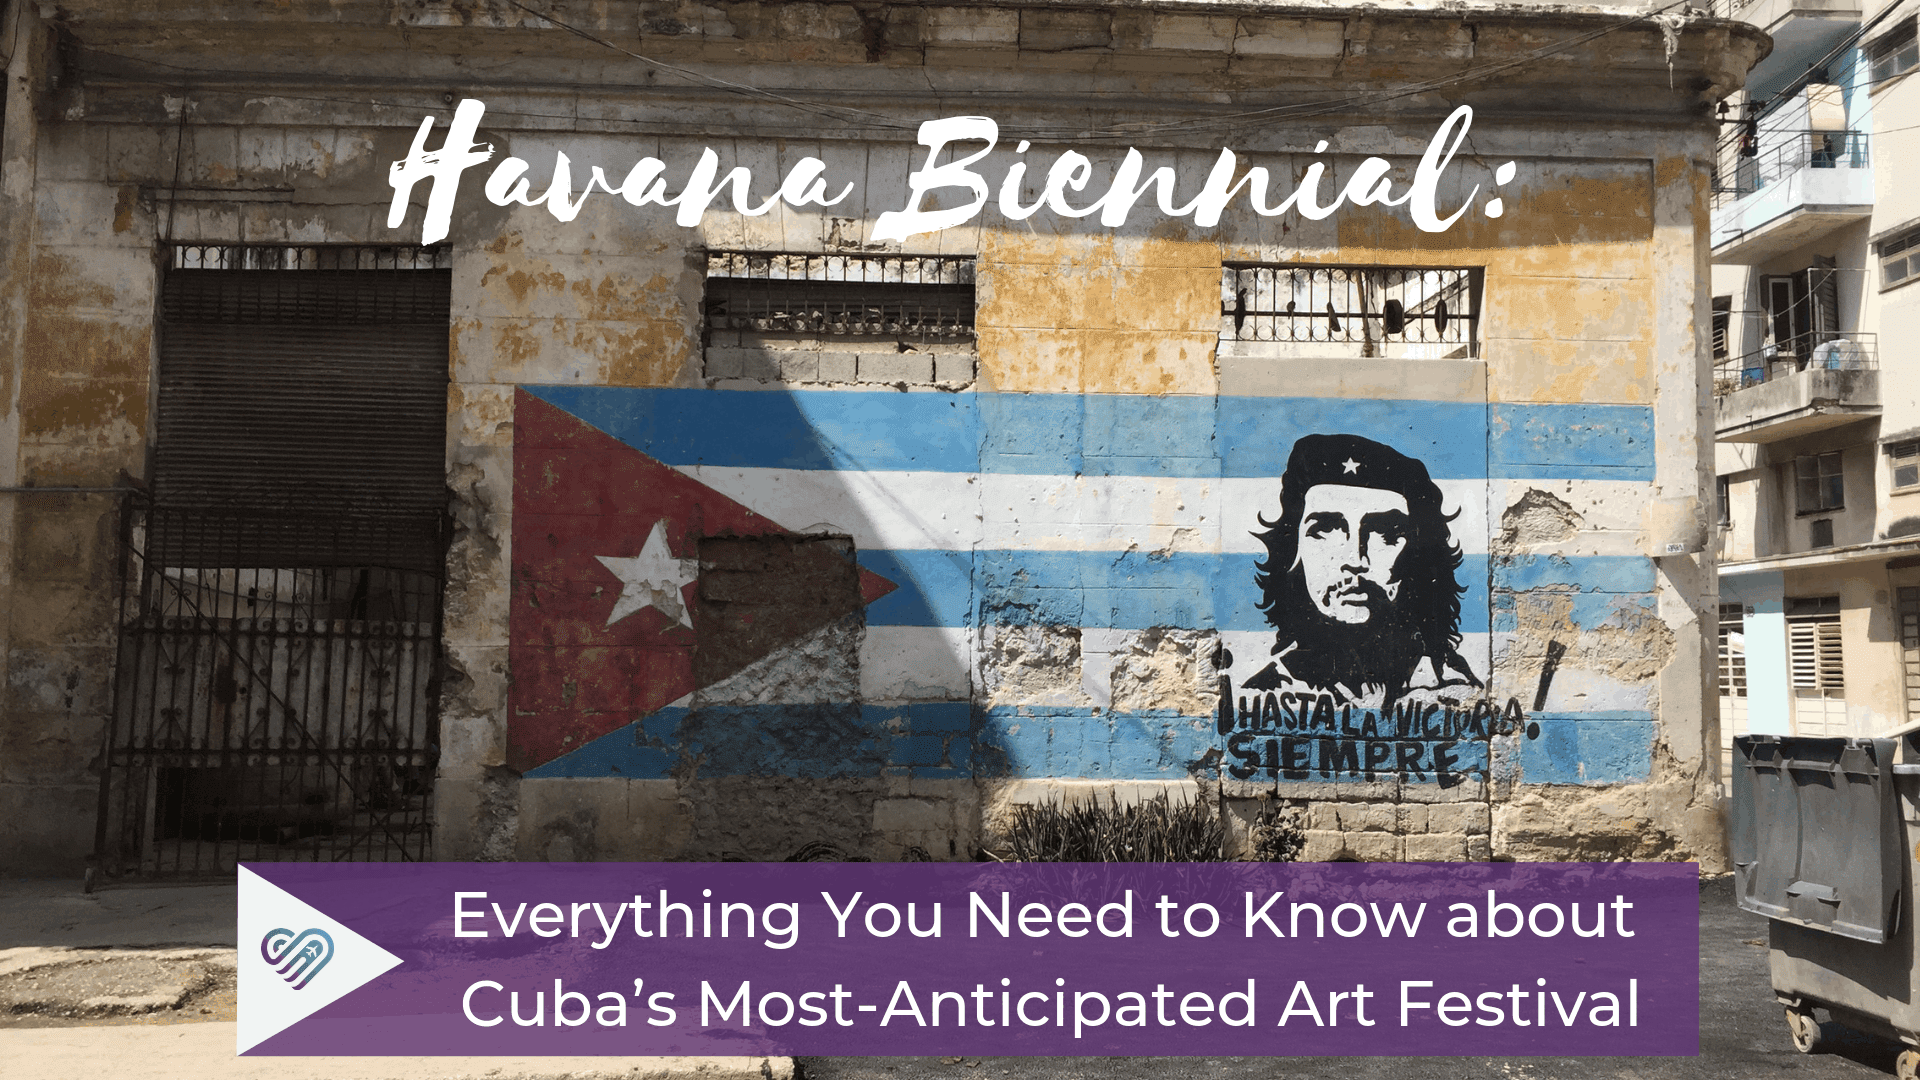 Havana Biennial: Everything You Need to Know about Cuba's Most-Anticipated Art Festival